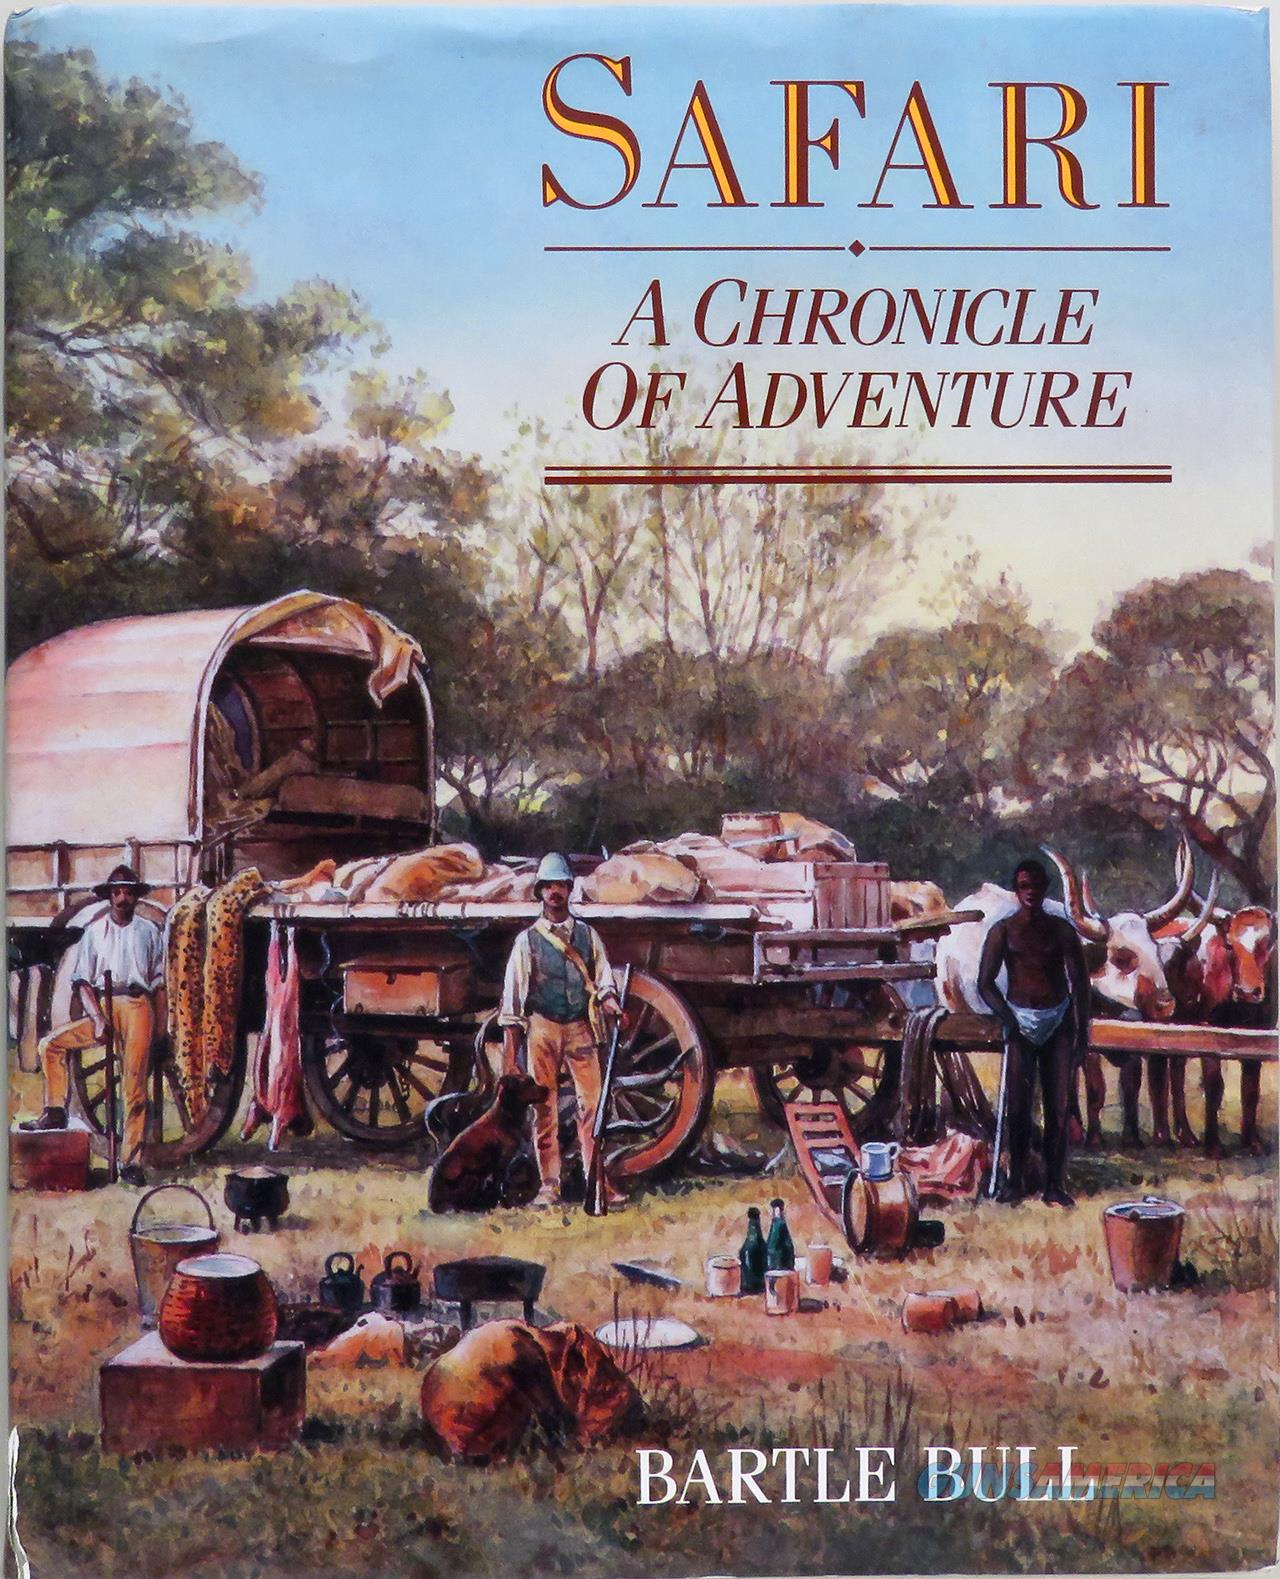 Safari by Bartle Bull, 1988, published by Viking  Non-Guns > Books & Magazines